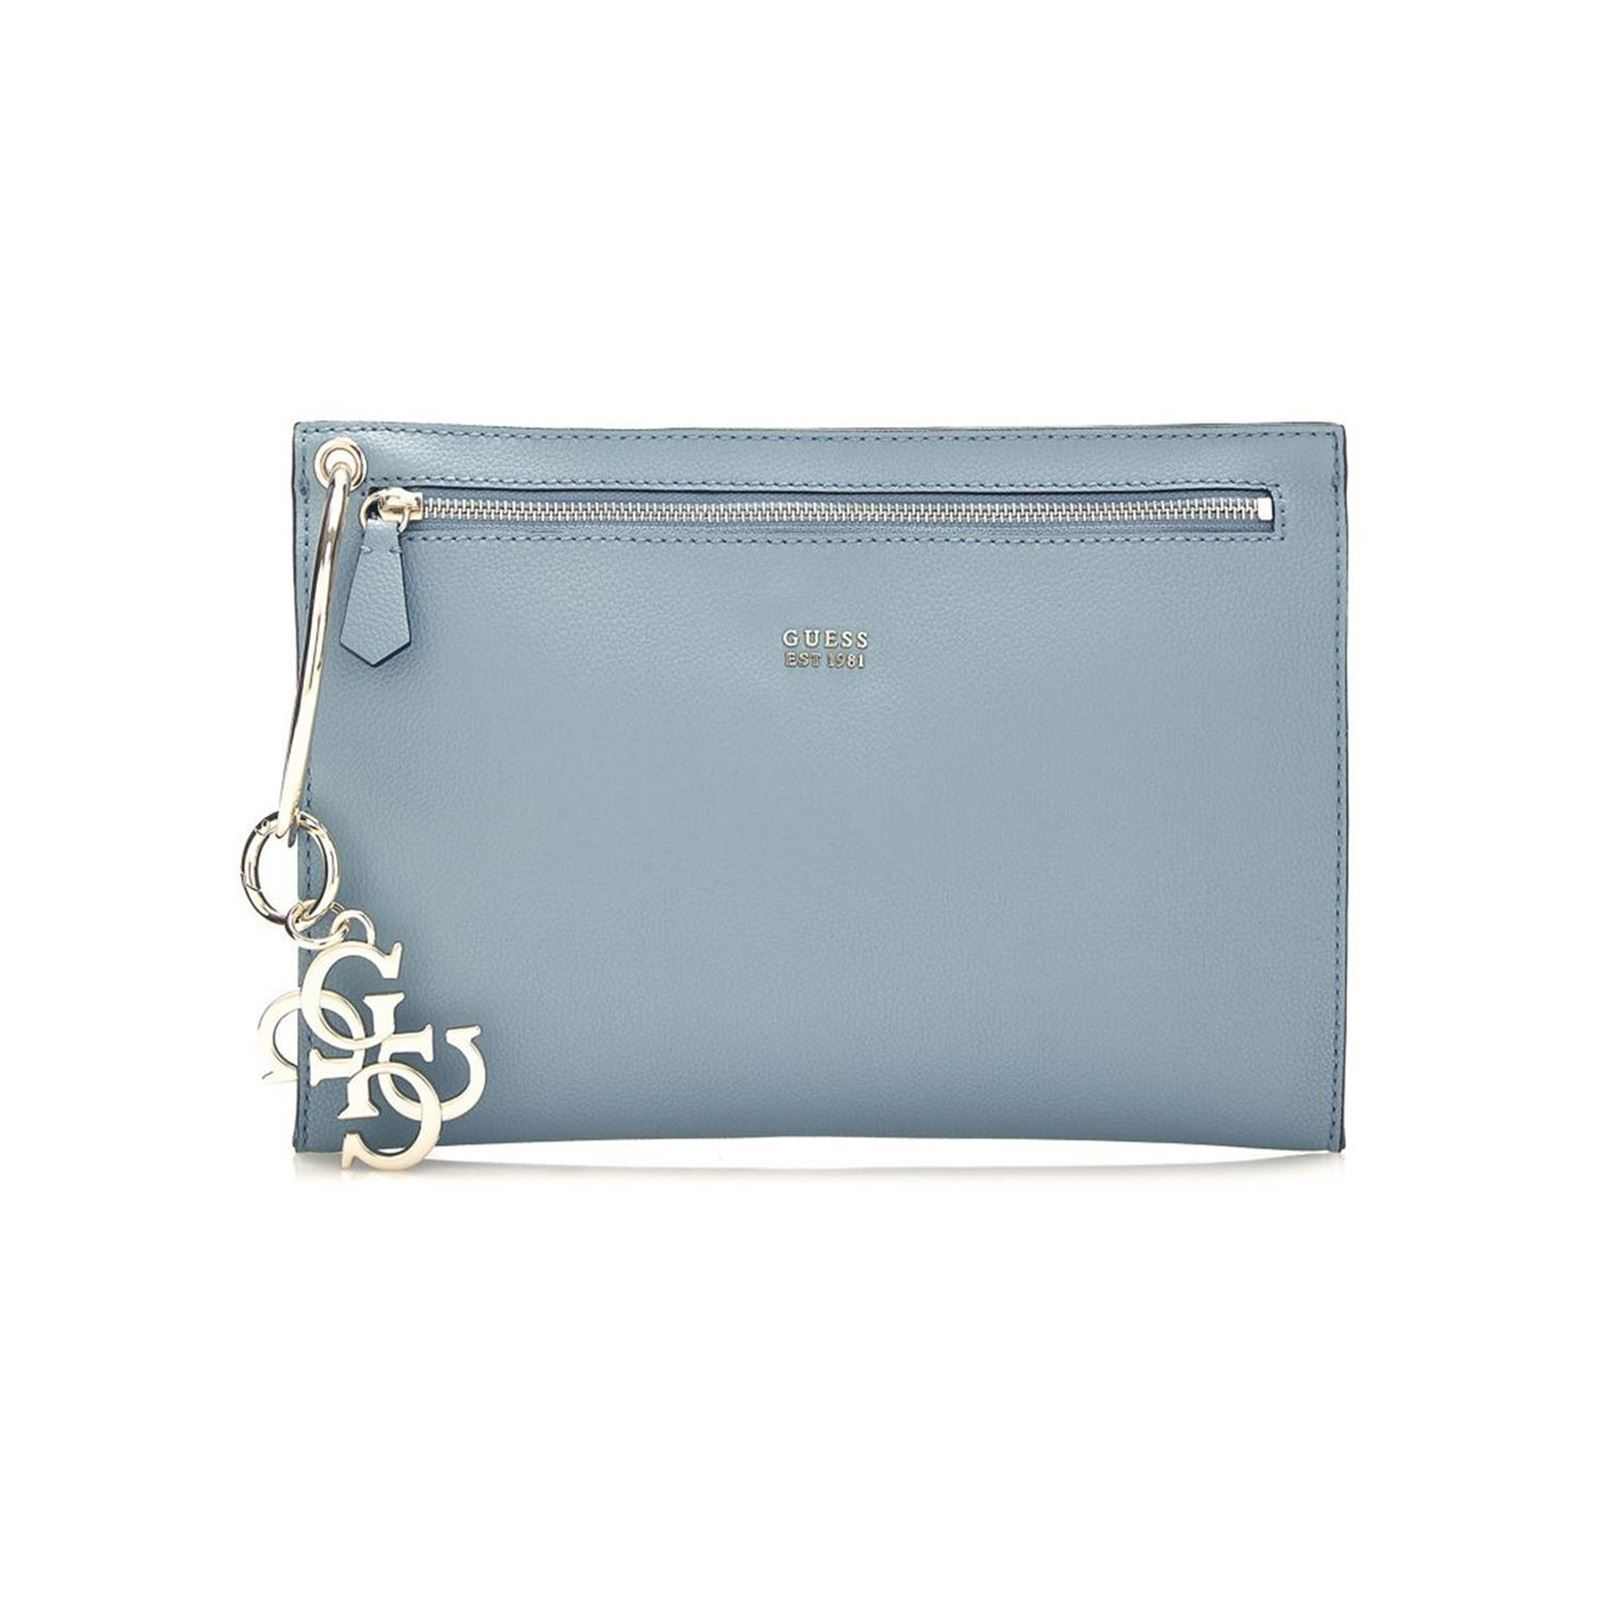 7174f0e301 Guess Digital - Sac pochette - bleu ciel | BrandAlley